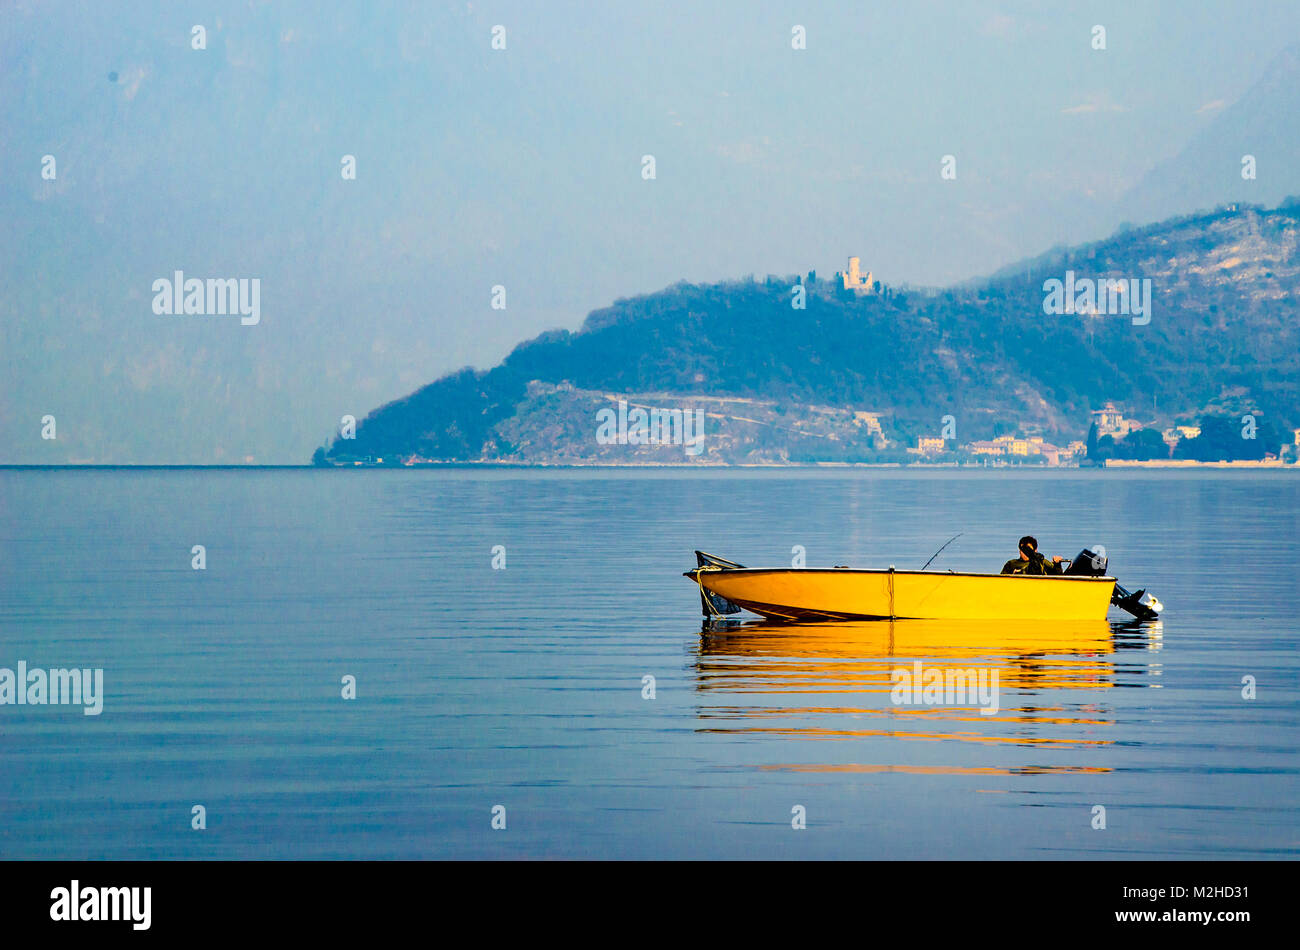 yellow boat misty waters lake winter sport fishing vacations - Stock Image